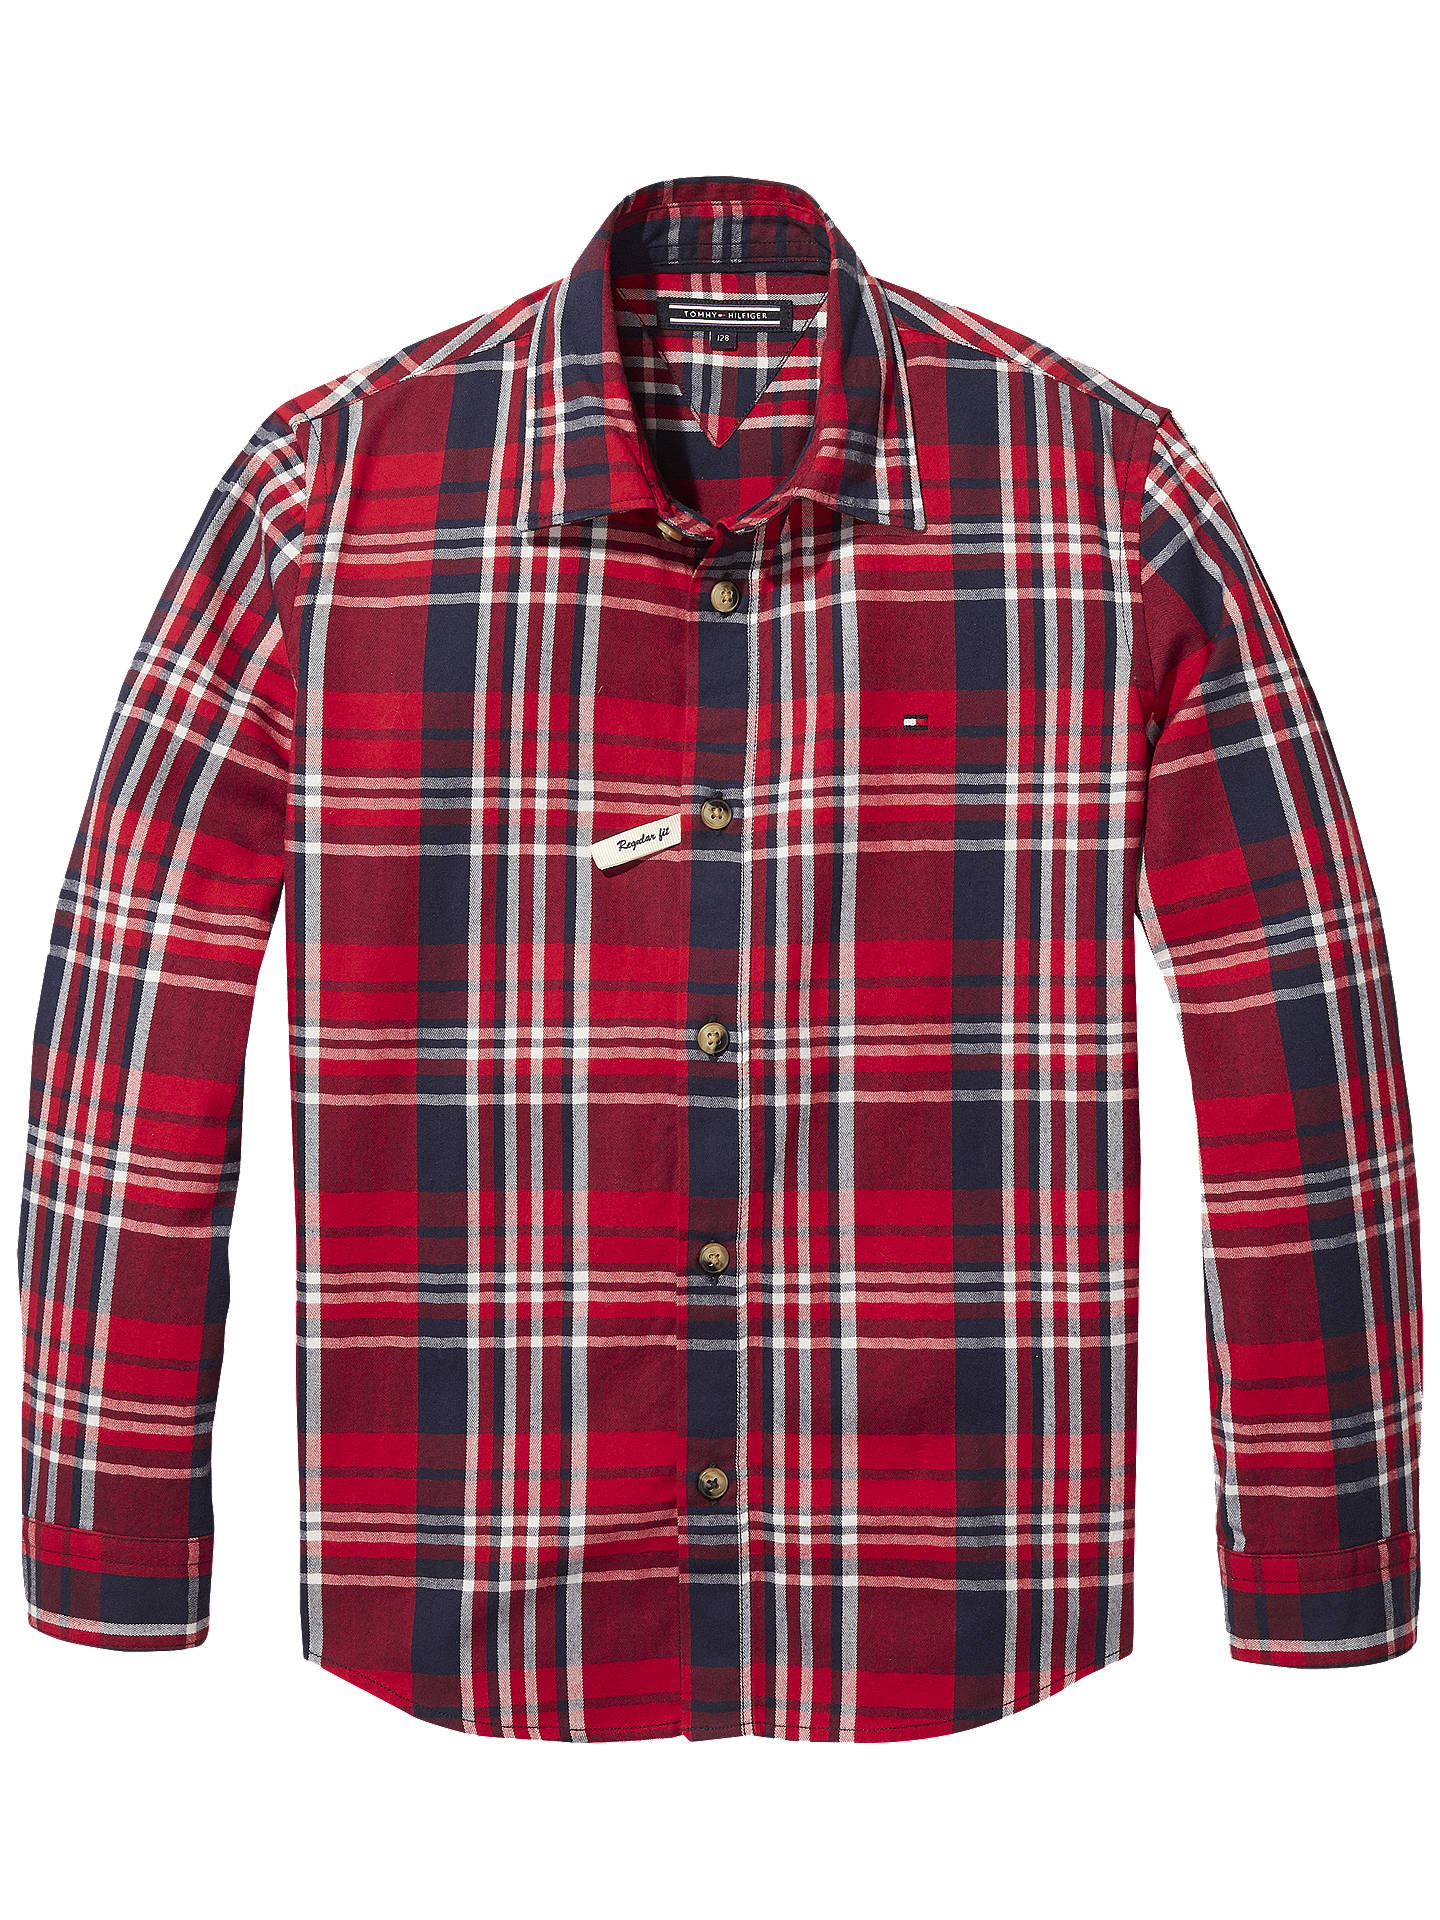 5f36747061da Buy Tommy Hilfiger Boys' Twill Check Shirt, Red, 6 years Online at  johnlewis ...